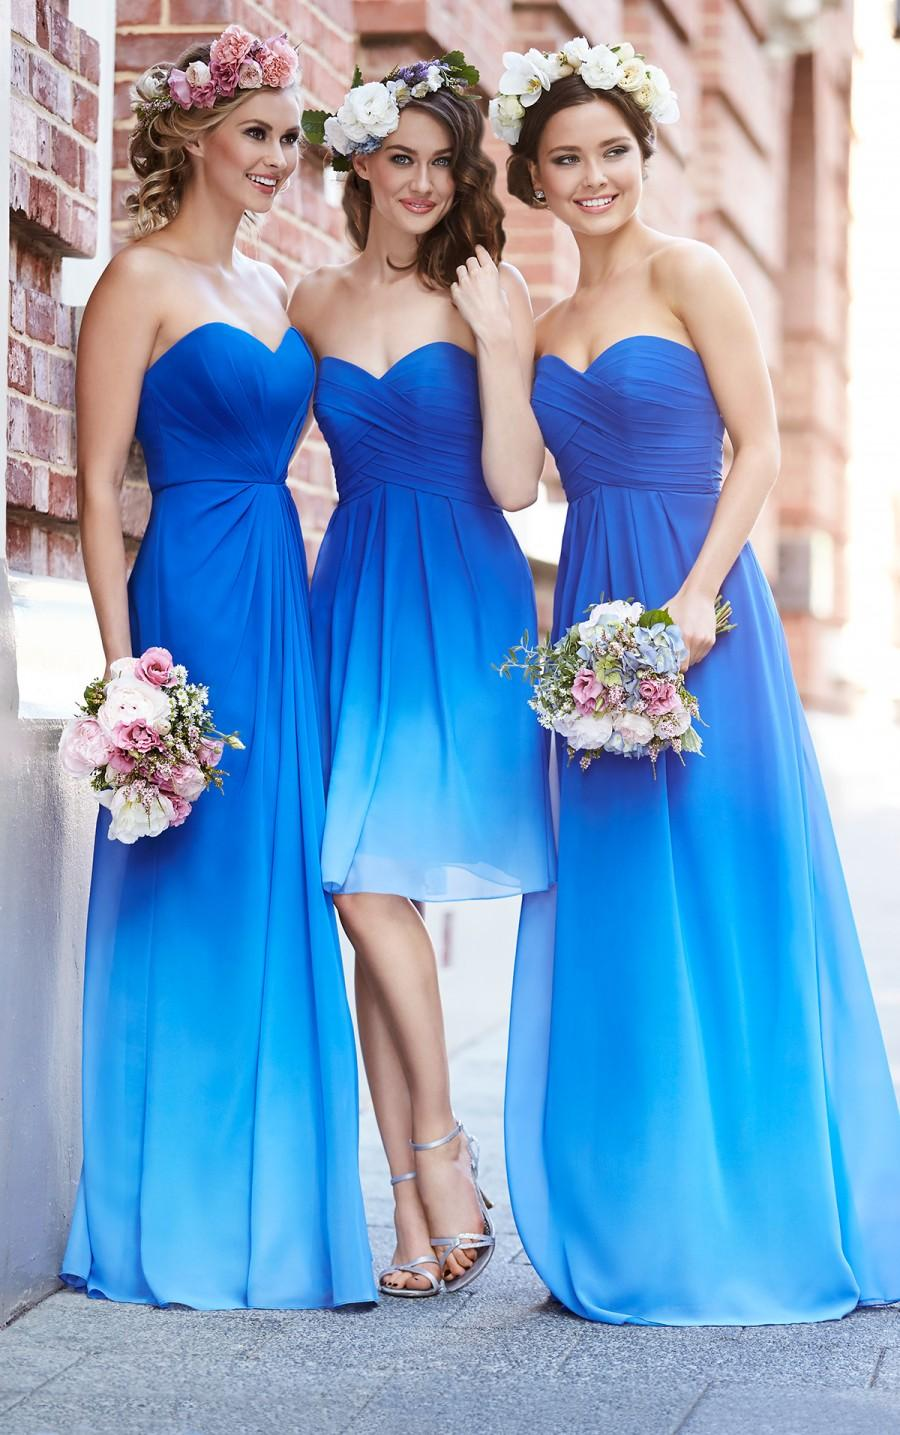 زفاف - Sorella Vita Blue Ombre Bridesmaid Dress Style 8404OM